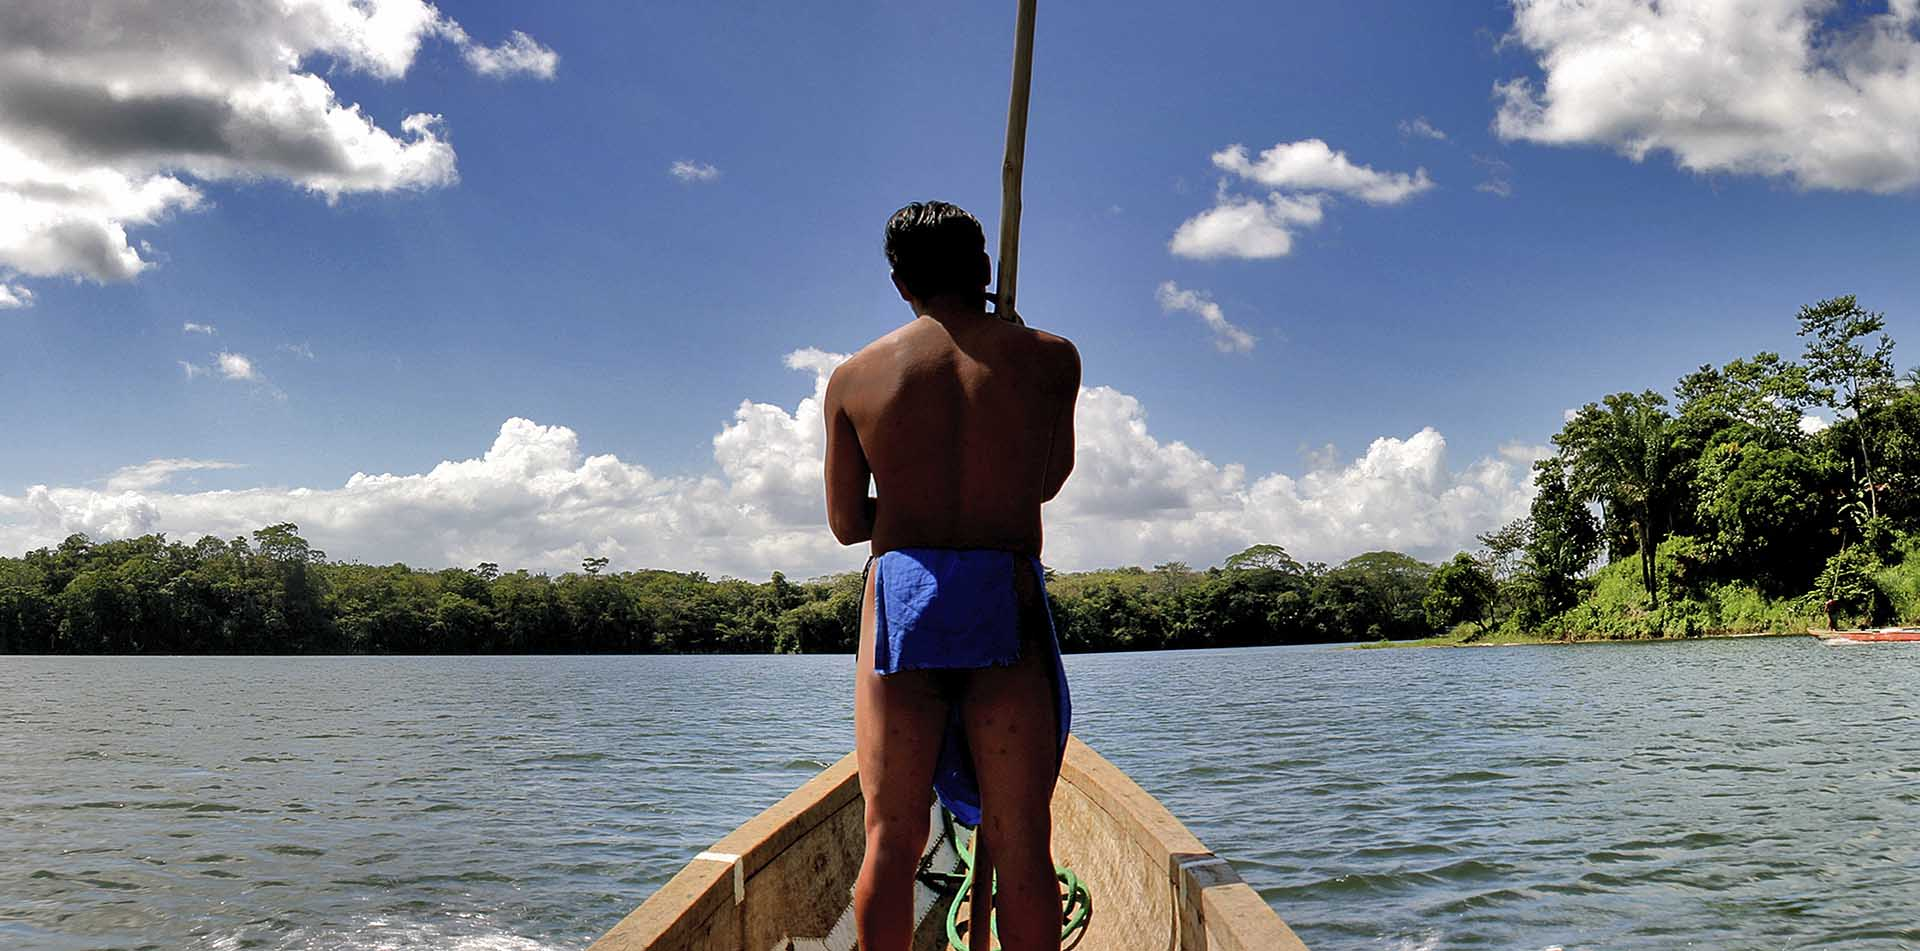 Central America Panama local Embera man in a wooden boat - luxury vacation destinations